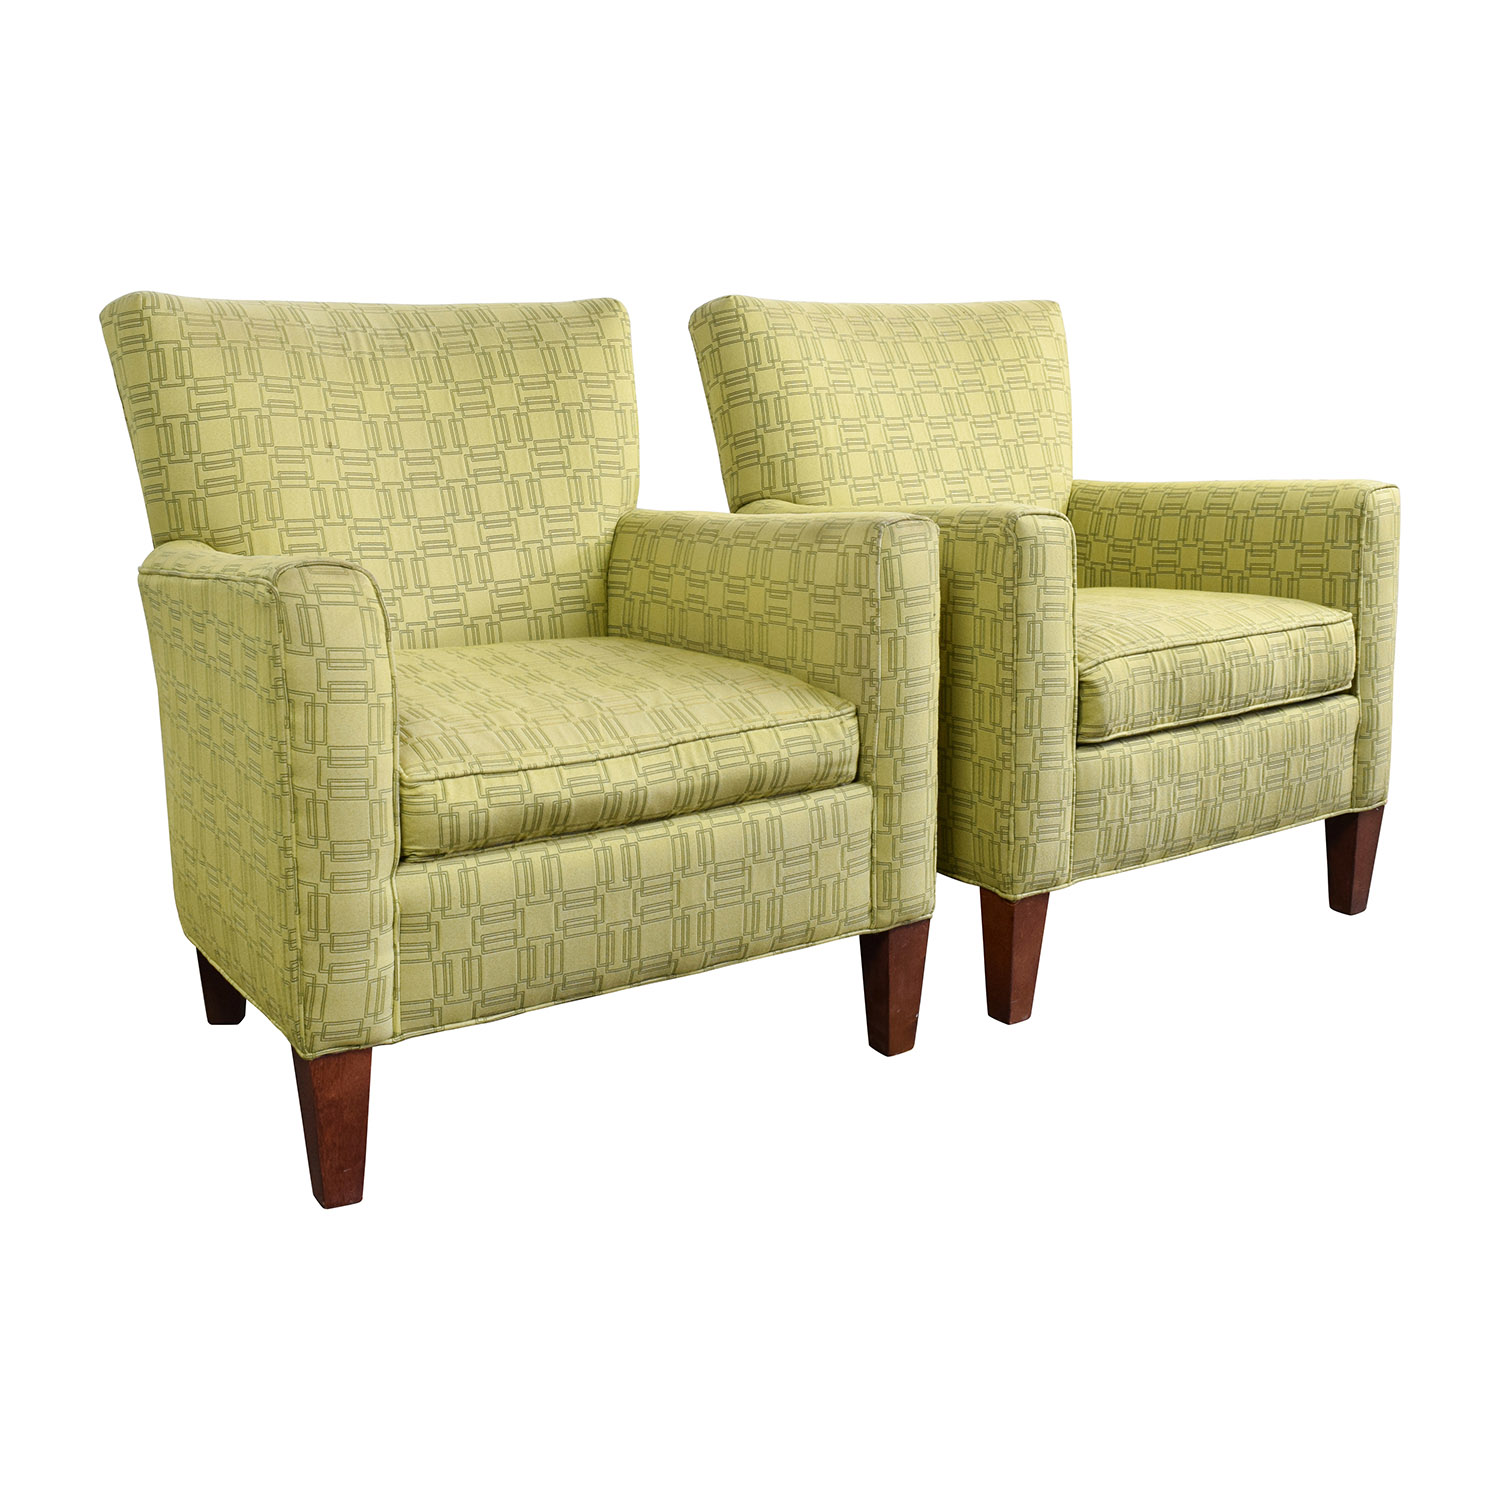 ethan allen recliners chairs lift chair recliner covers 90 off green upholstered accent